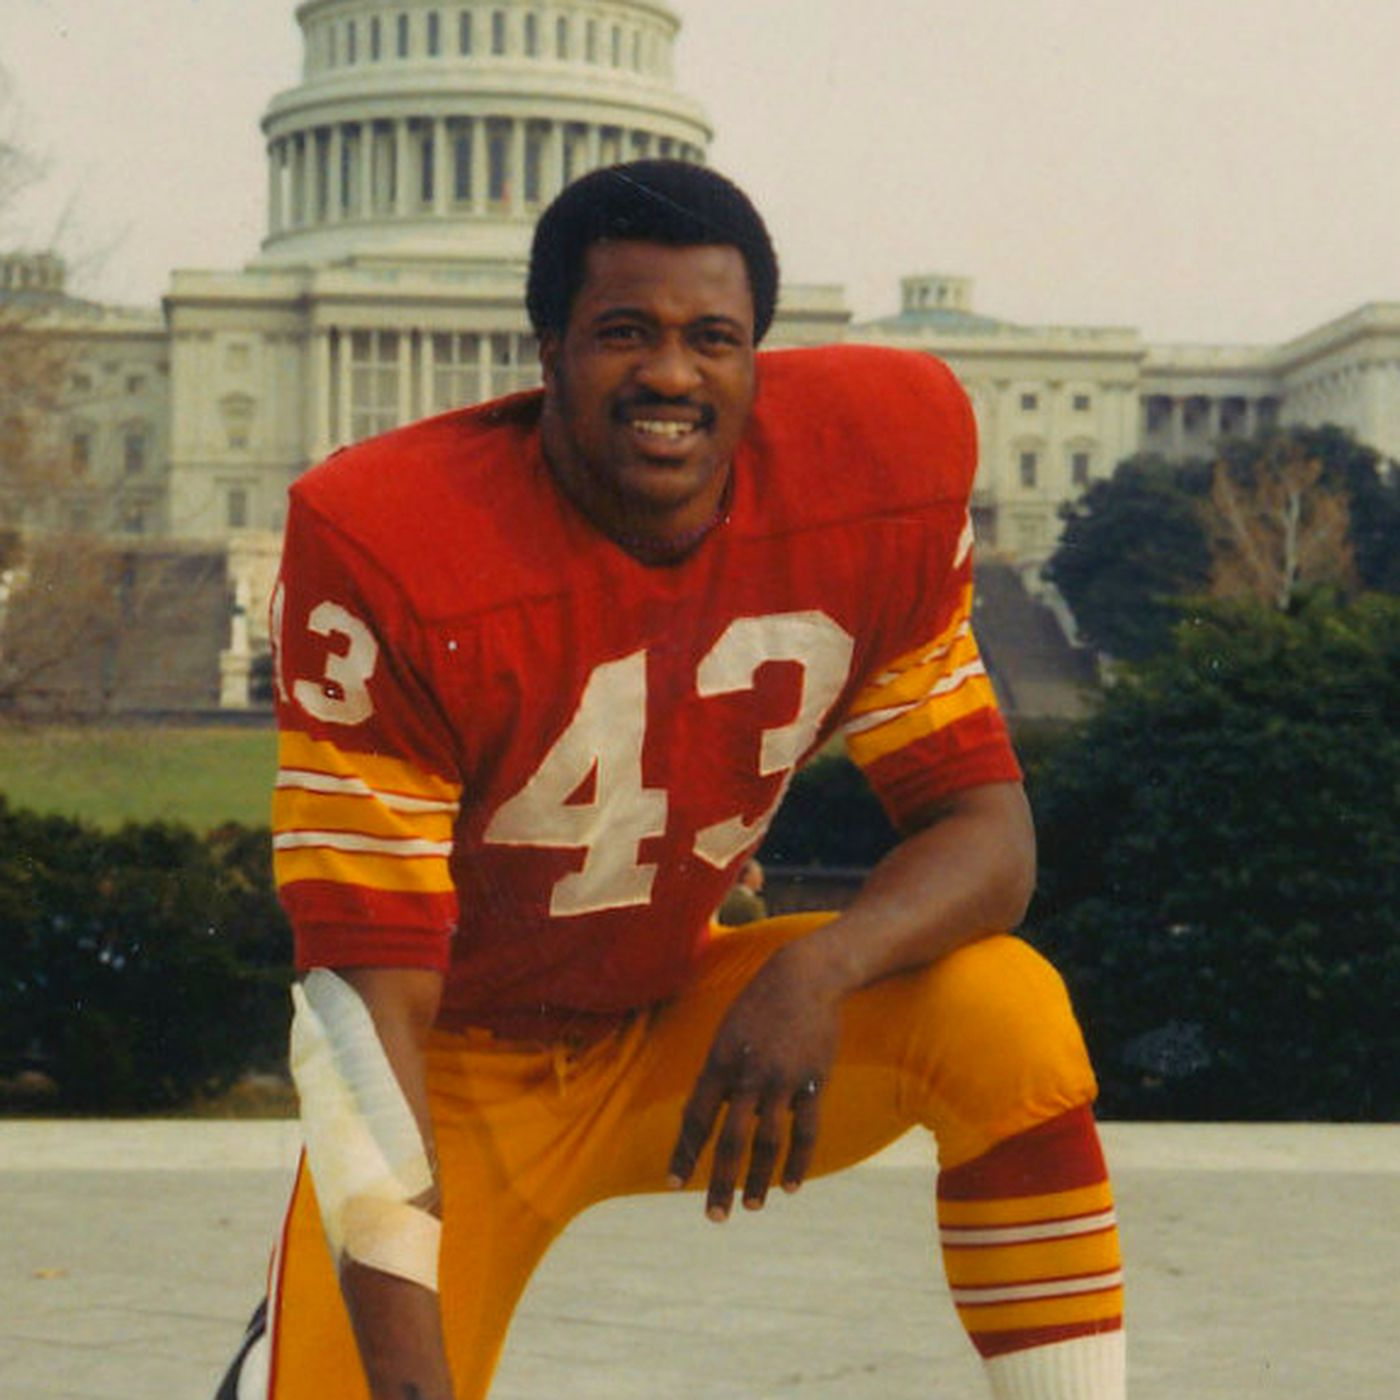 newest 4492e 235e0 Redskins by the (Jersey) Numbers: #43 - Larry Brown - Hogs Haven